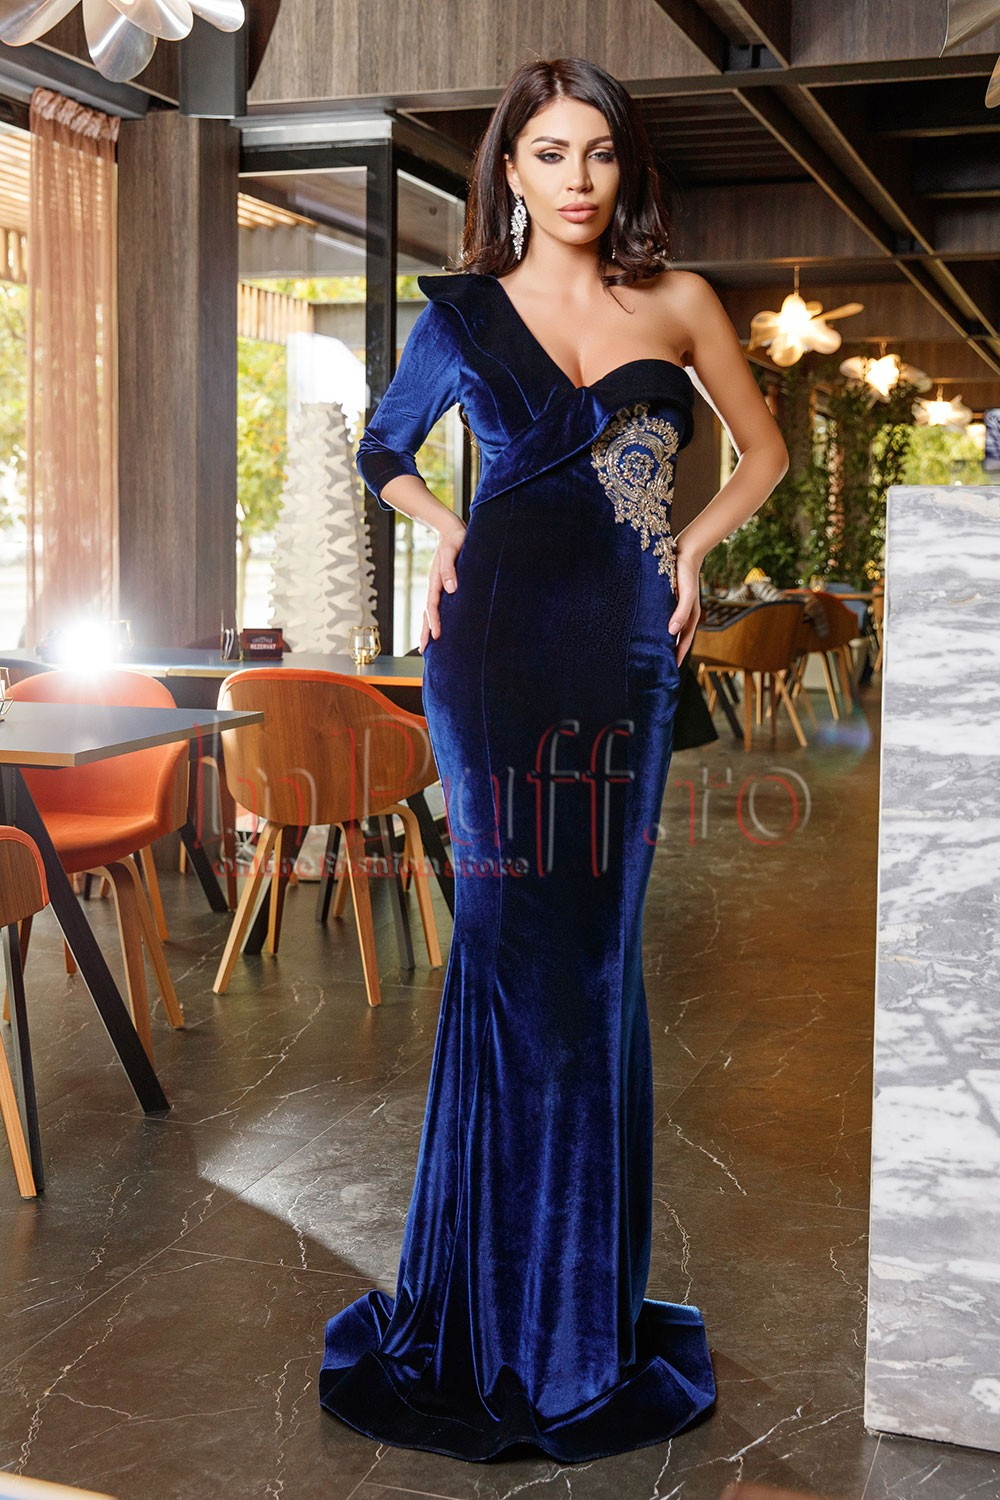 Rochie lunga Atmosphere din catifea si broderie aurie